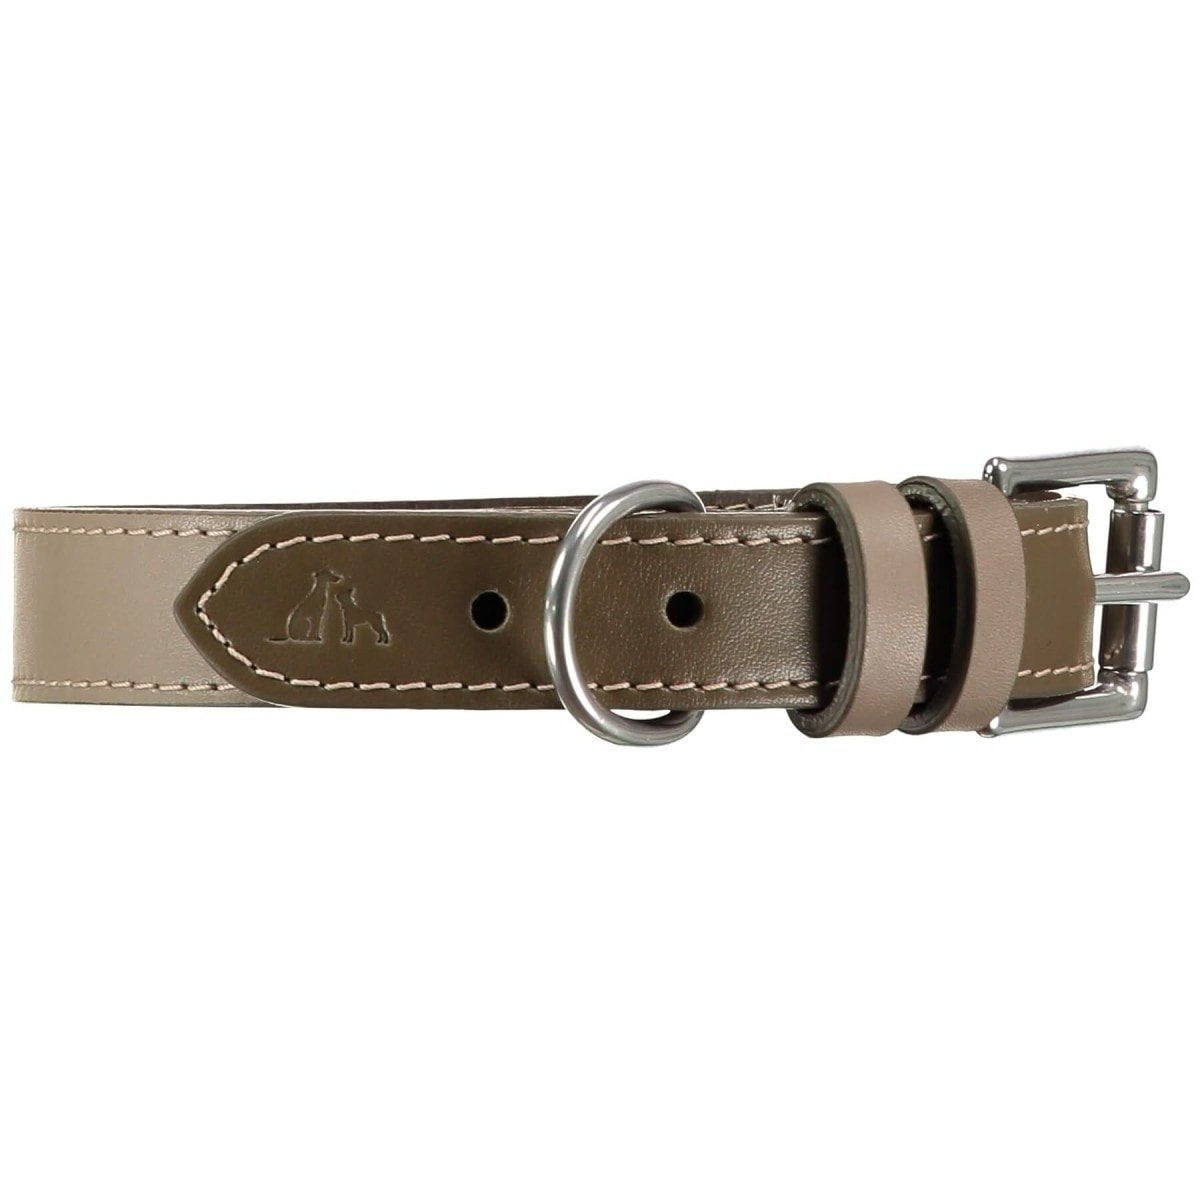 Baker & Bray Dog Apparel X-Small Richmond Dog Collar by Baker & Bray - Earth/Truffle BB-41-01-16-XS PetsOwnUs - Pets Own Us